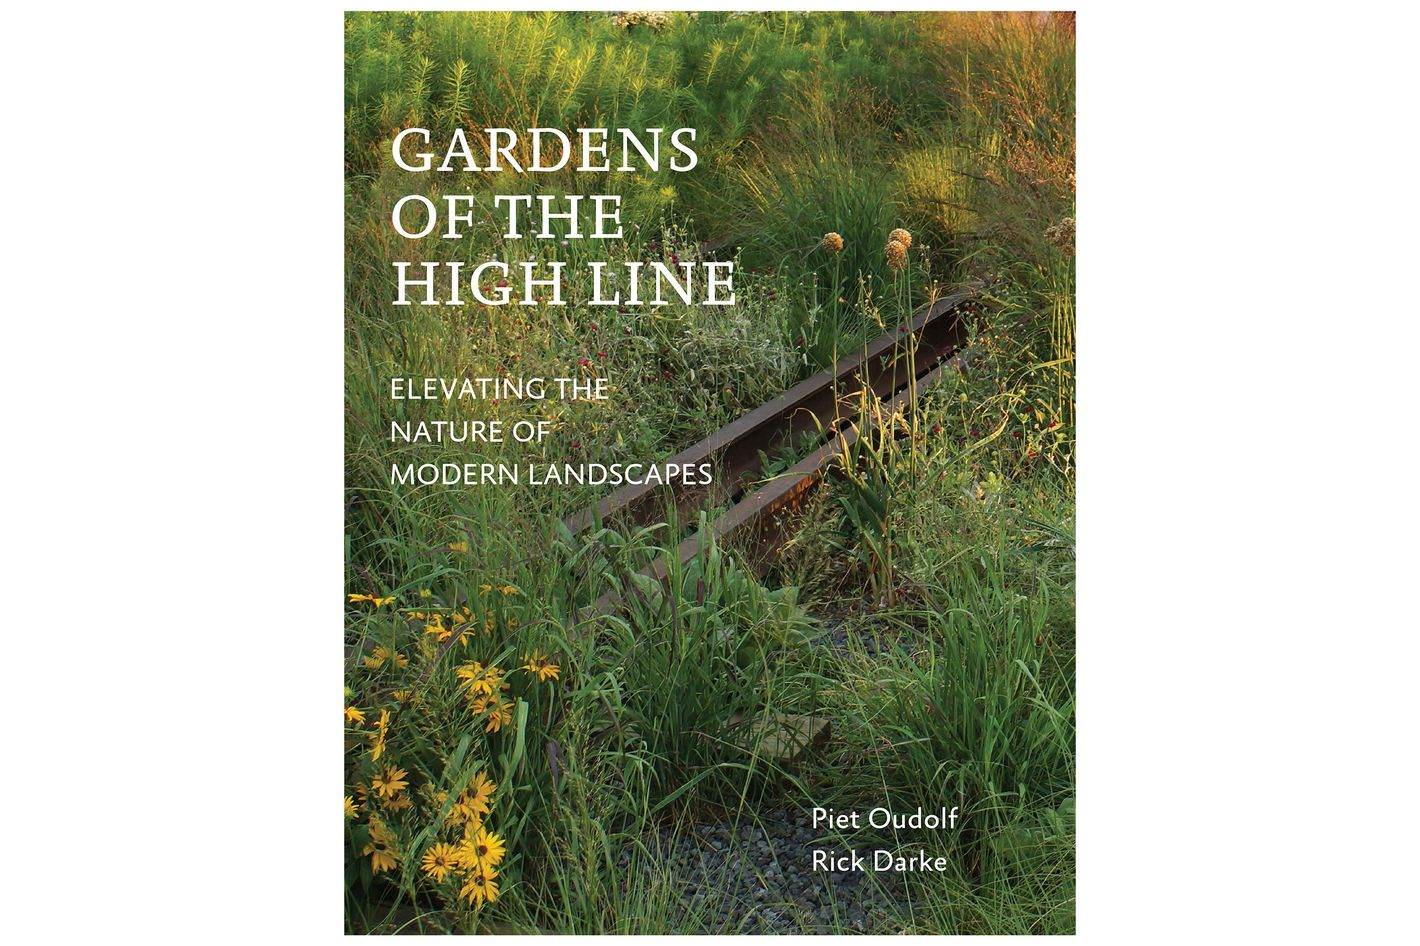 <em>Gardens of the High Line: Elevating the Nature of Modern Landscapes</em>, by Piet Oudolf and Rick Darke